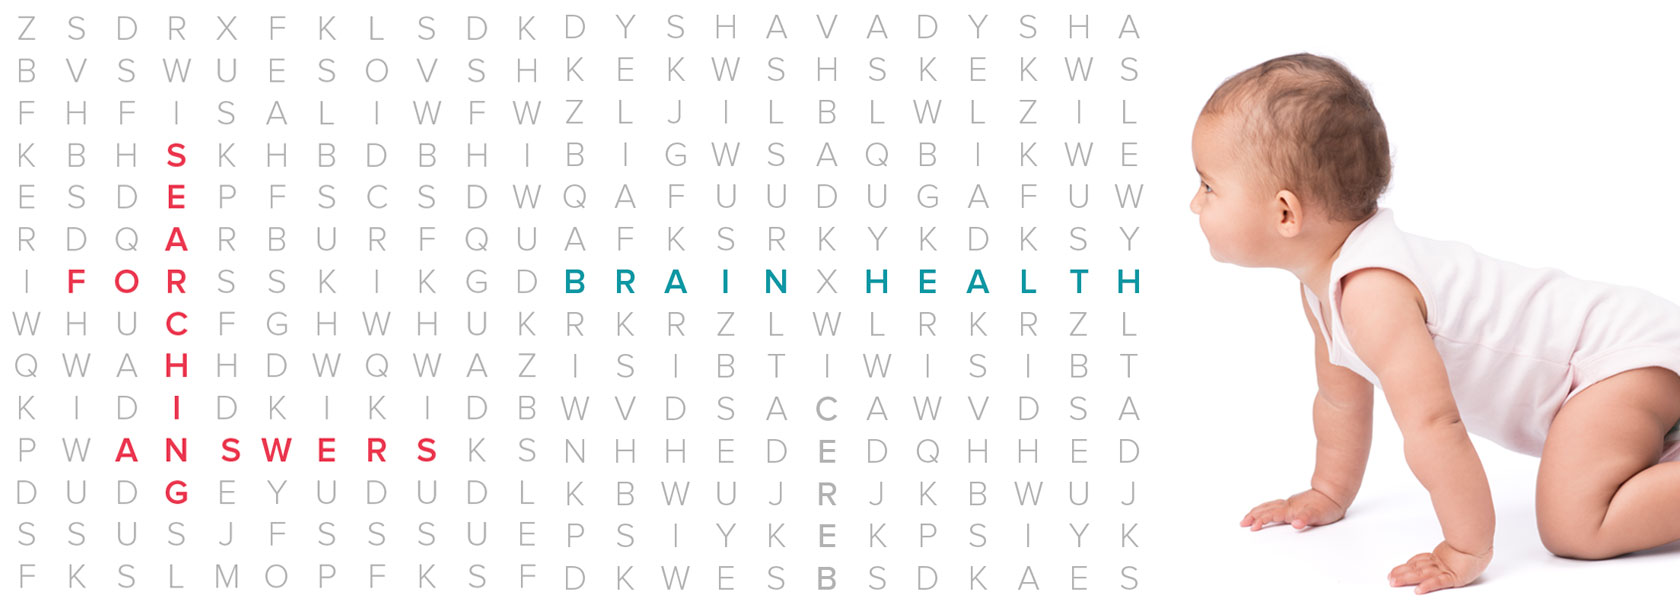 brain health is a journey that begins at birth